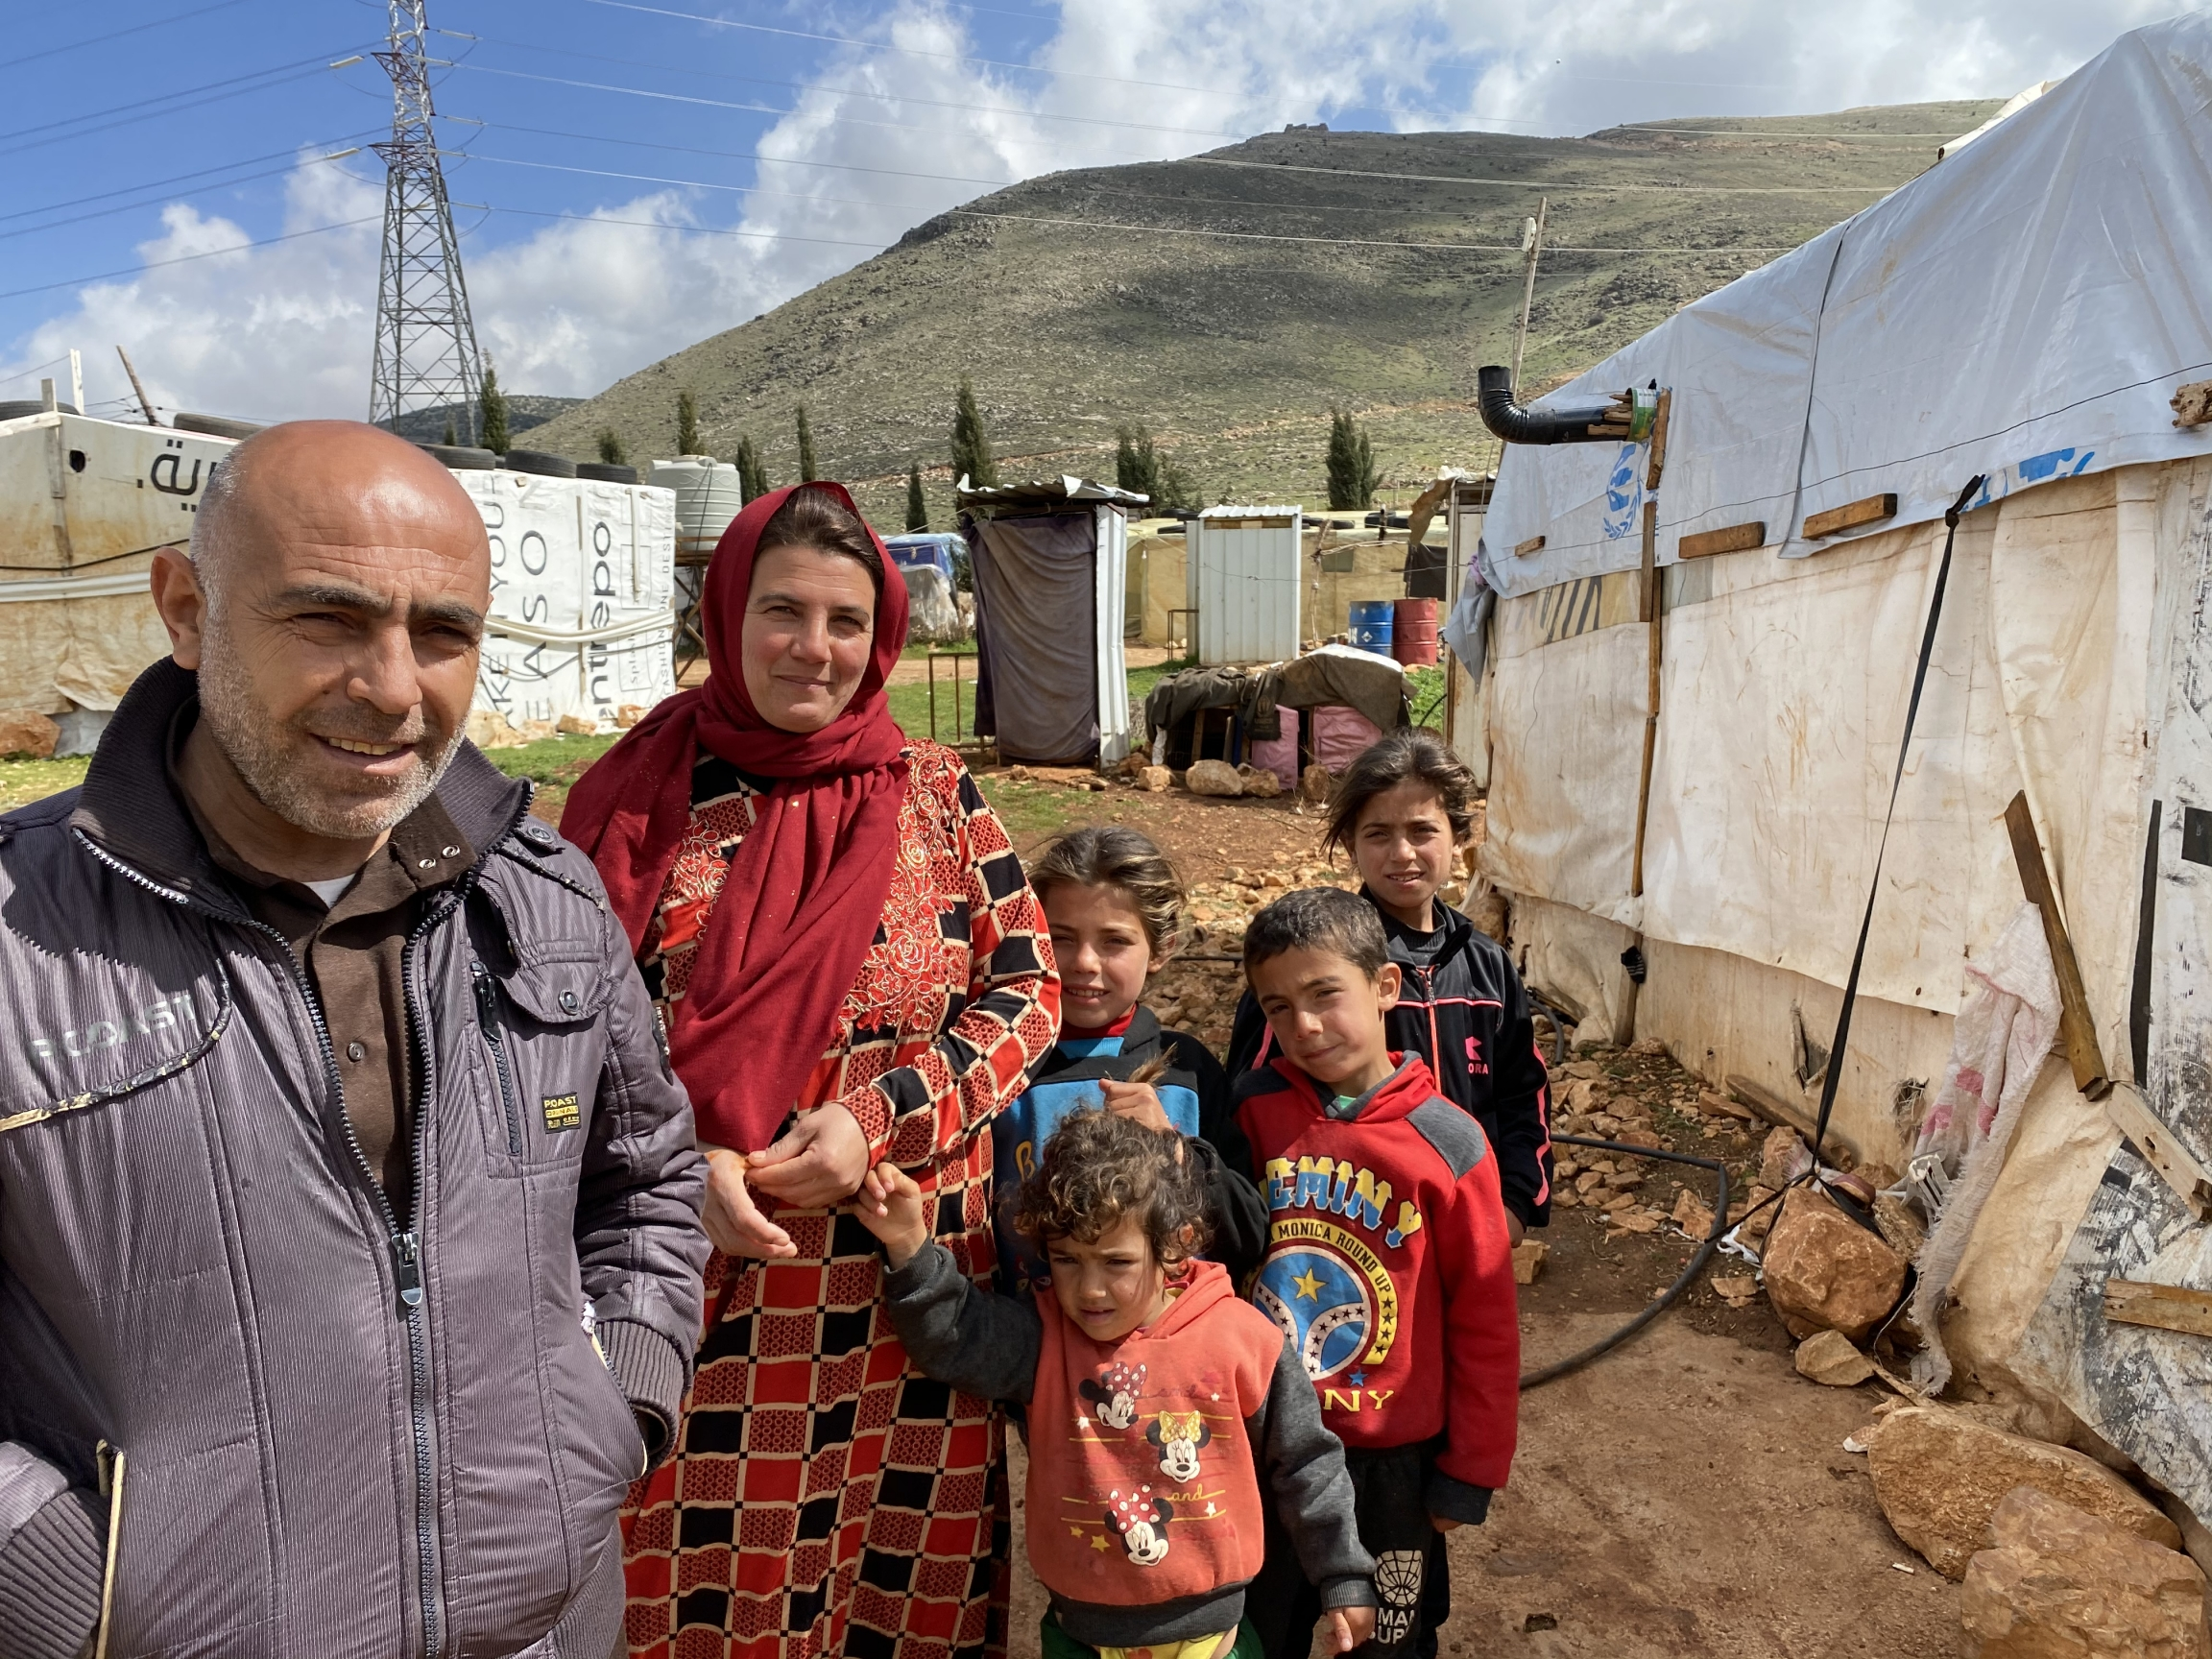 Ali Hamoud stands in front of his tent with his family. The mountains behind mark the Syrian border.